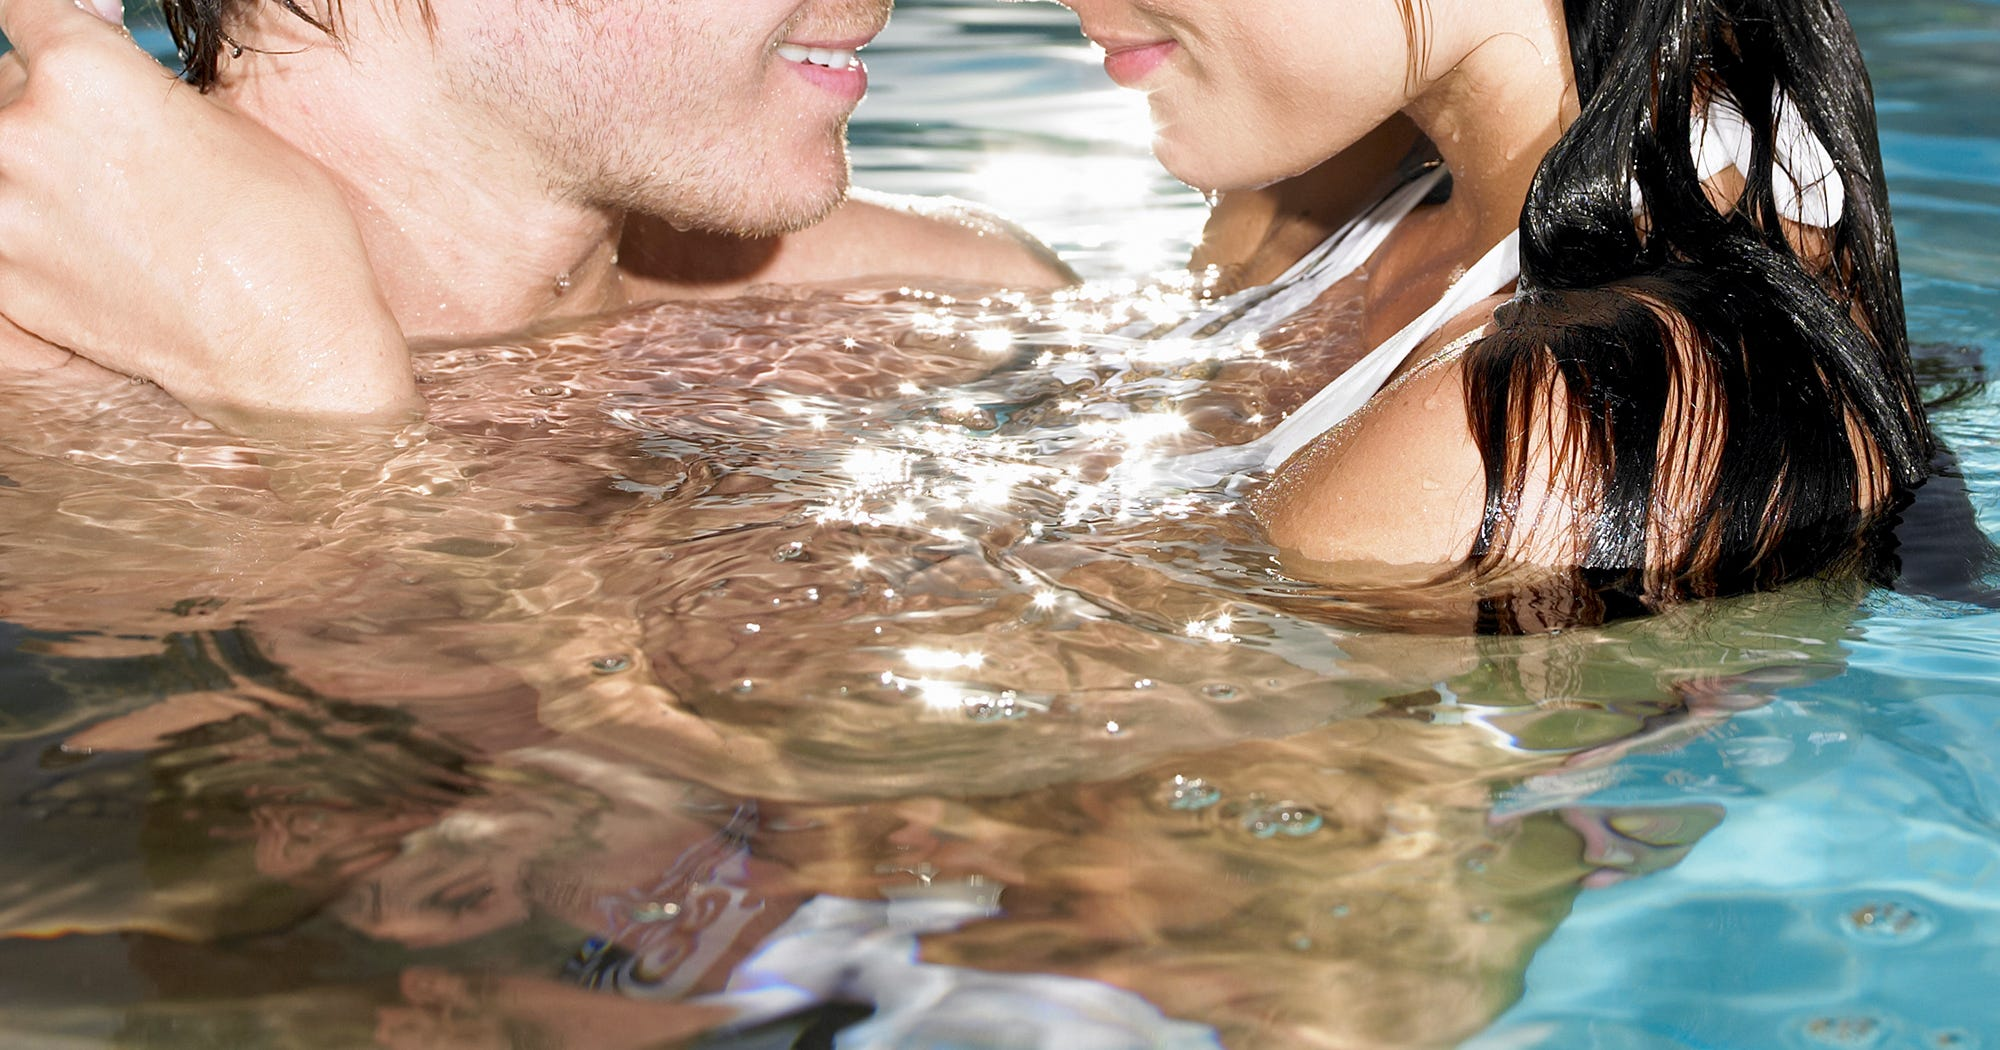 Is it bad for a girl to have sex underwater